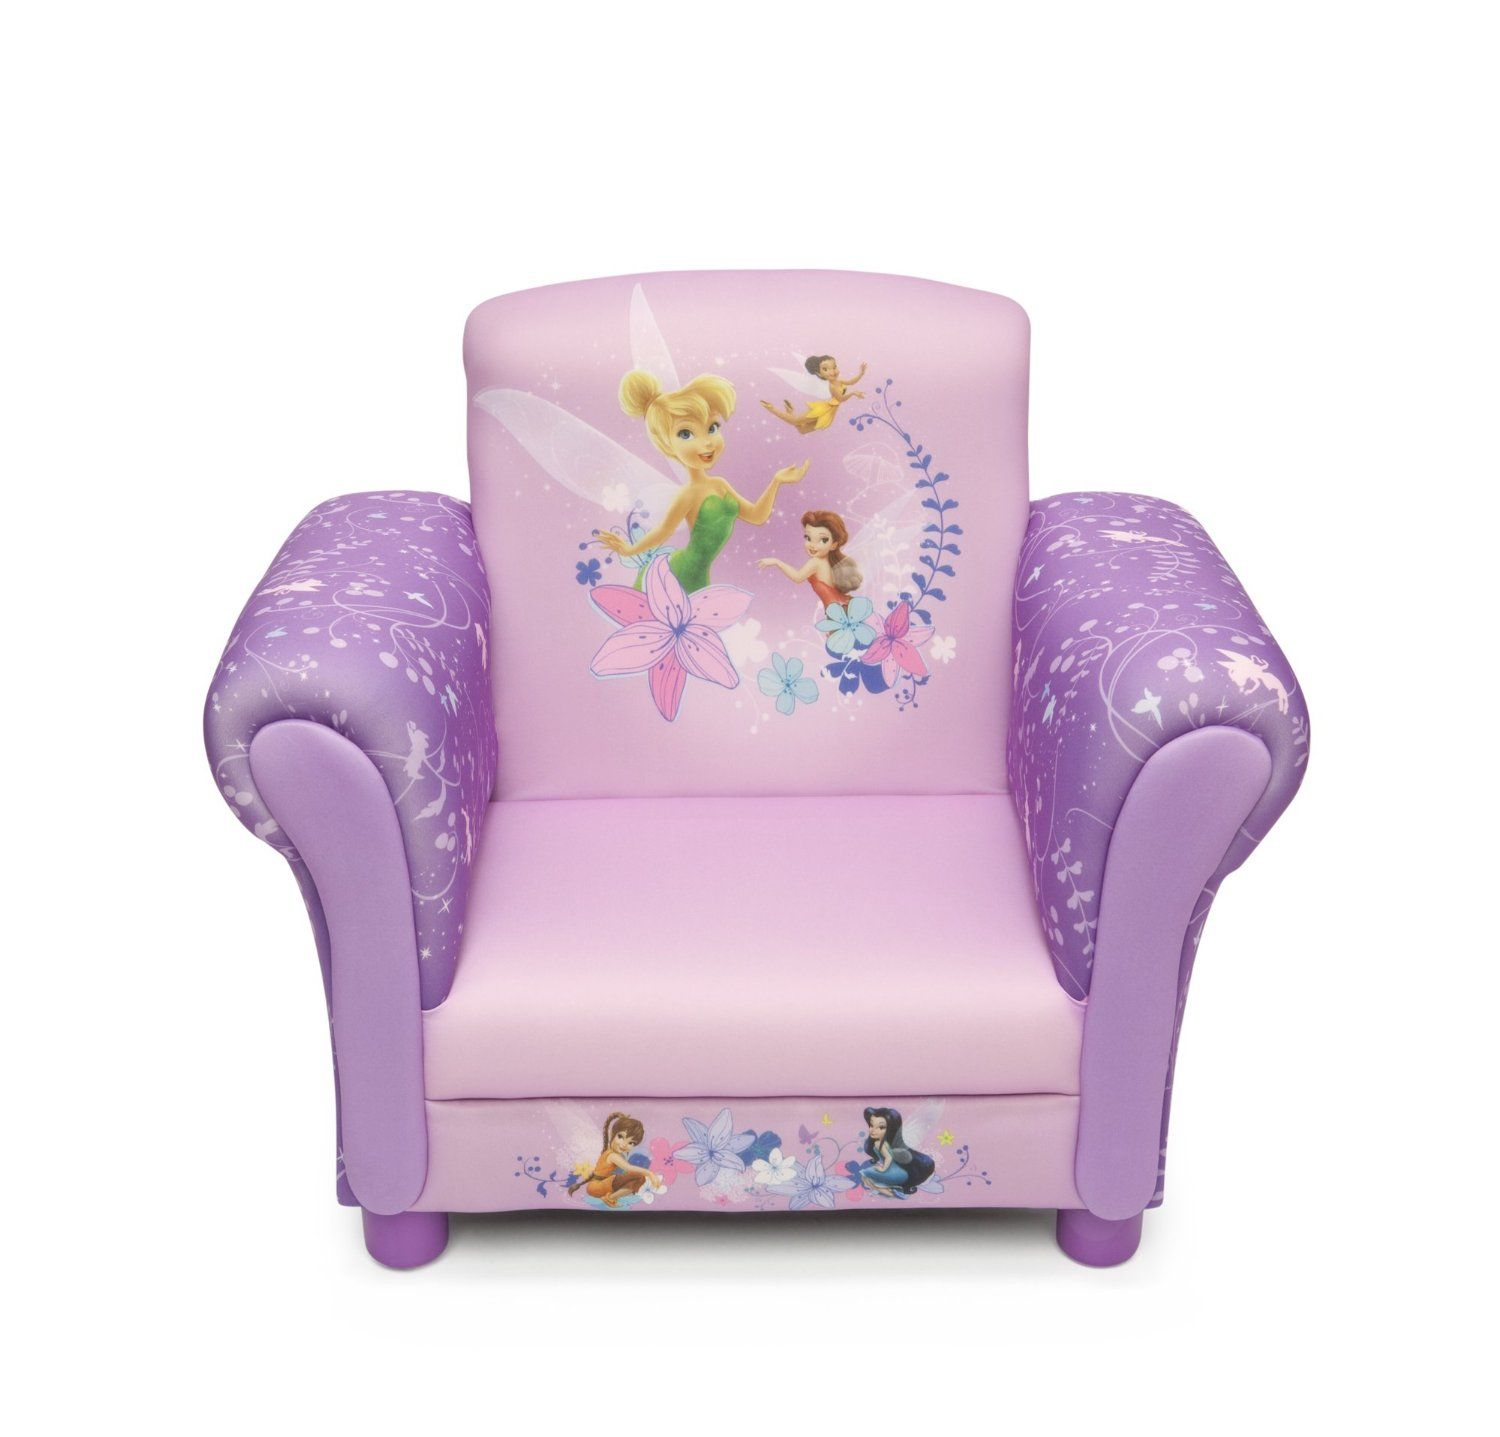 Best Disney Fairies Upholstered Chair Amazon Co Uk Baby My 400 x 300